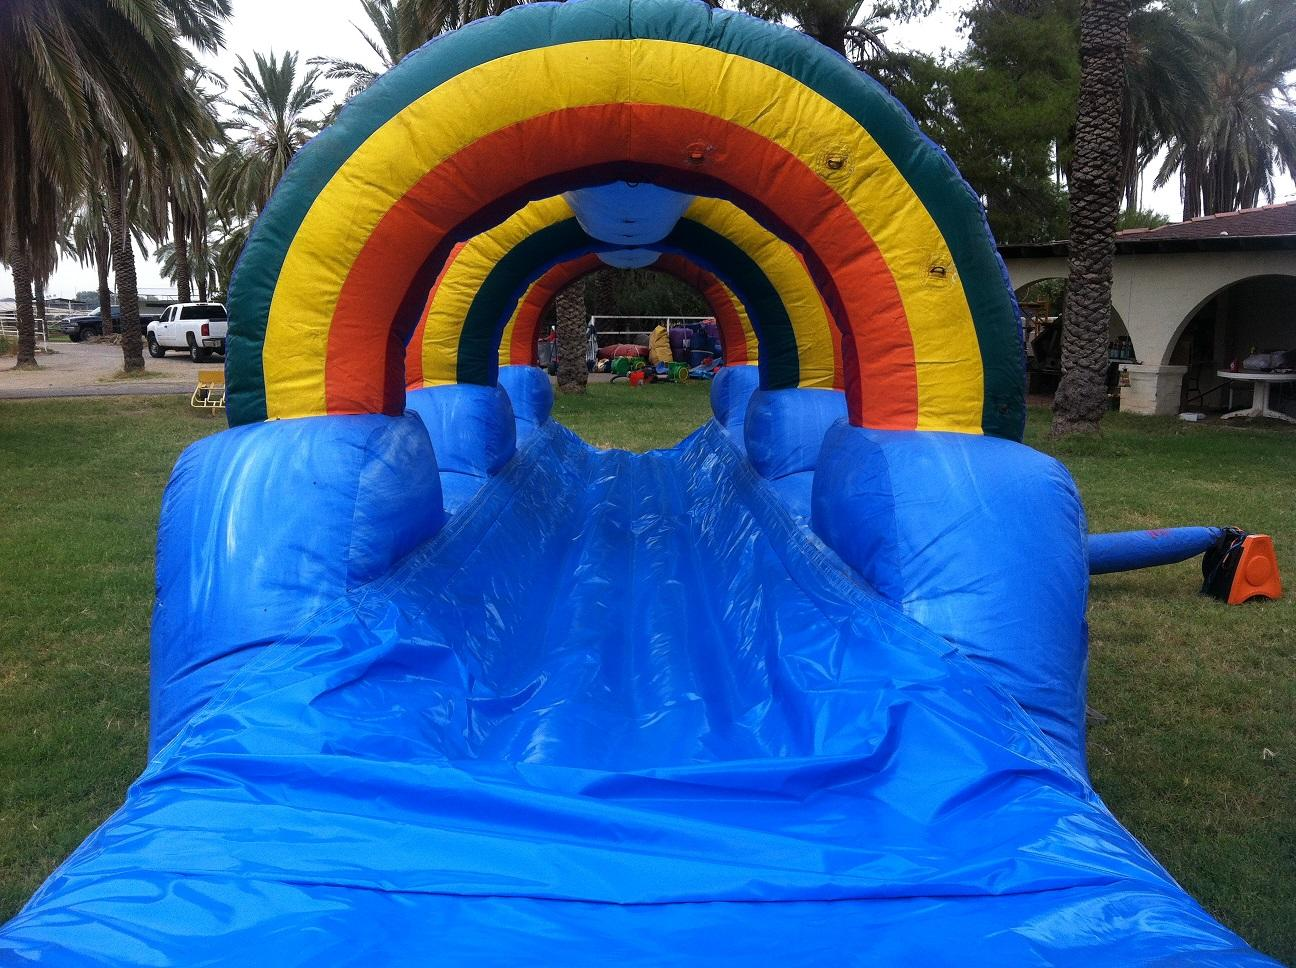 Wave Runner Teen Sized Giant Slip n Slide Rental in Arizona